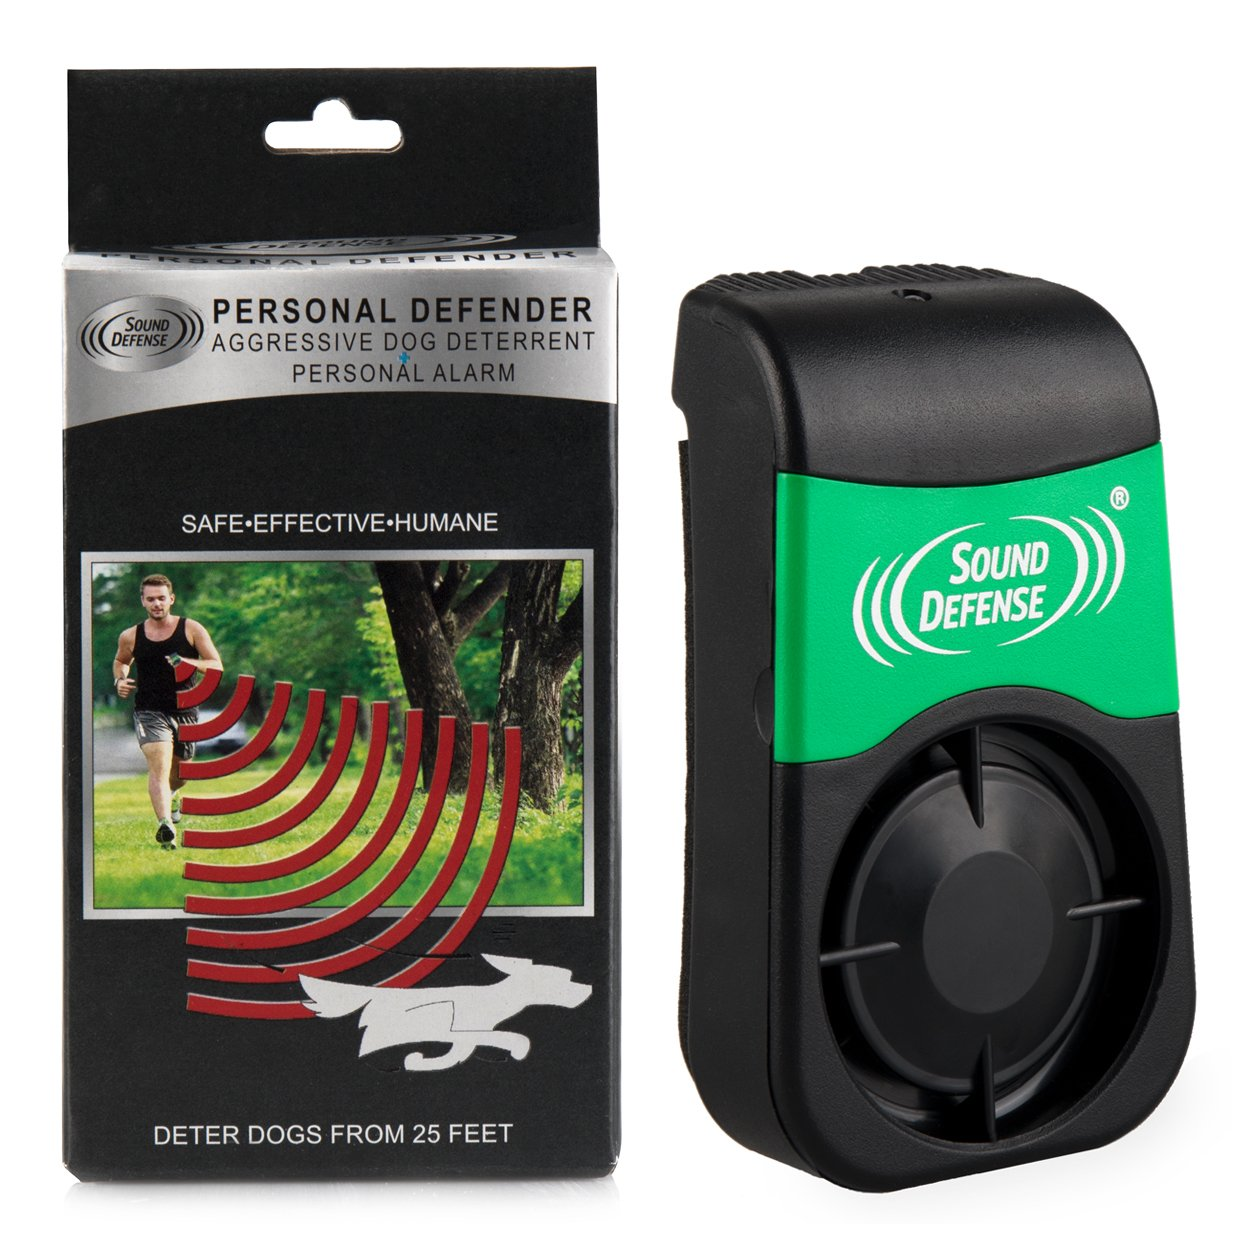 Sonic Dog Repellent & Deterrent Device: Electronic Outdoor Animal Pest Repeller for Personal Safety